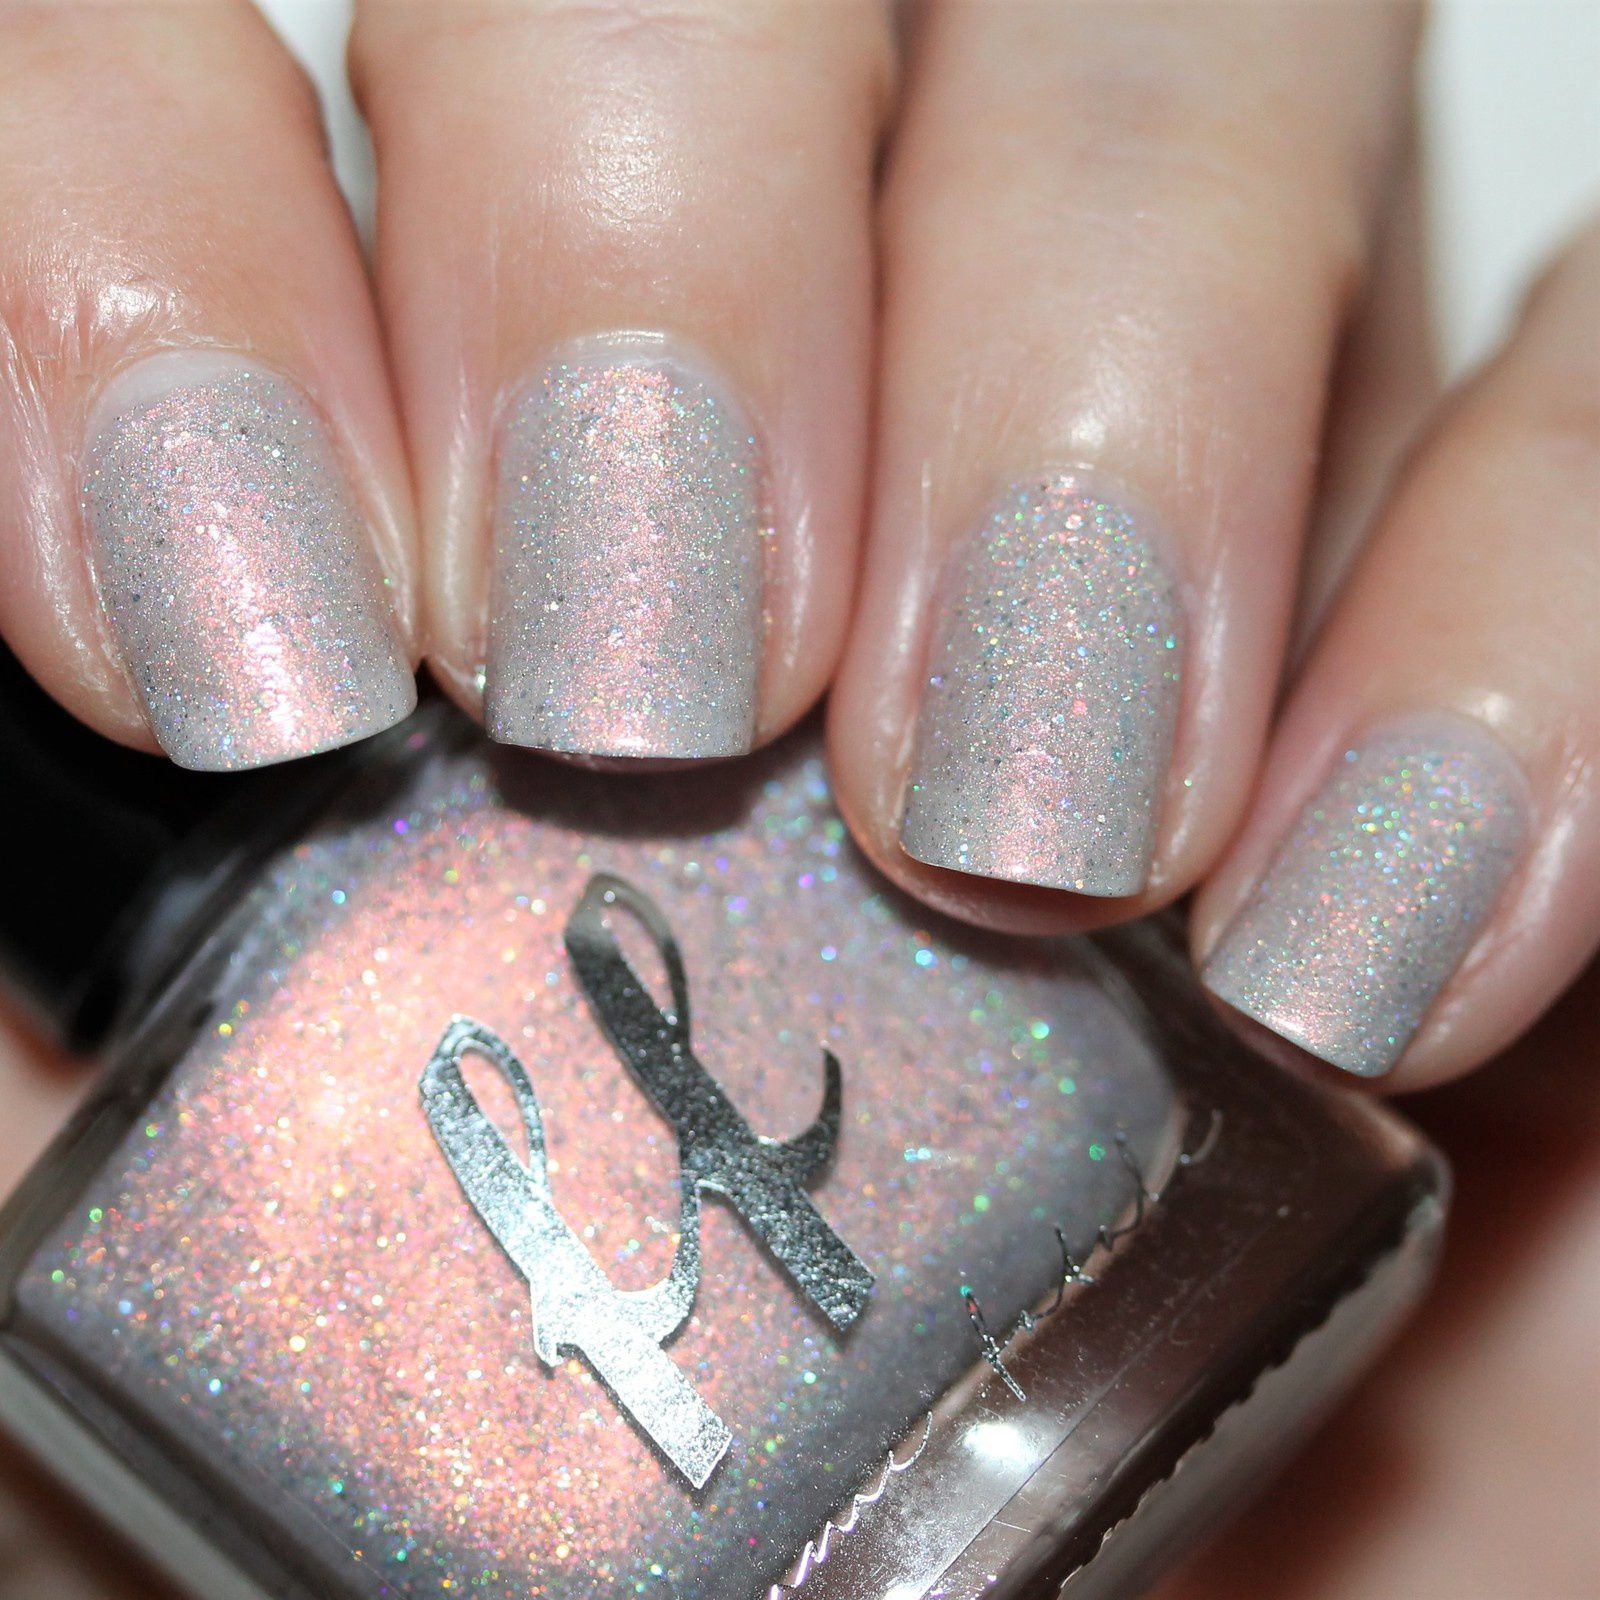 Femme Fatale Cosmetics The Neverending Story Collection - Des trucs ...